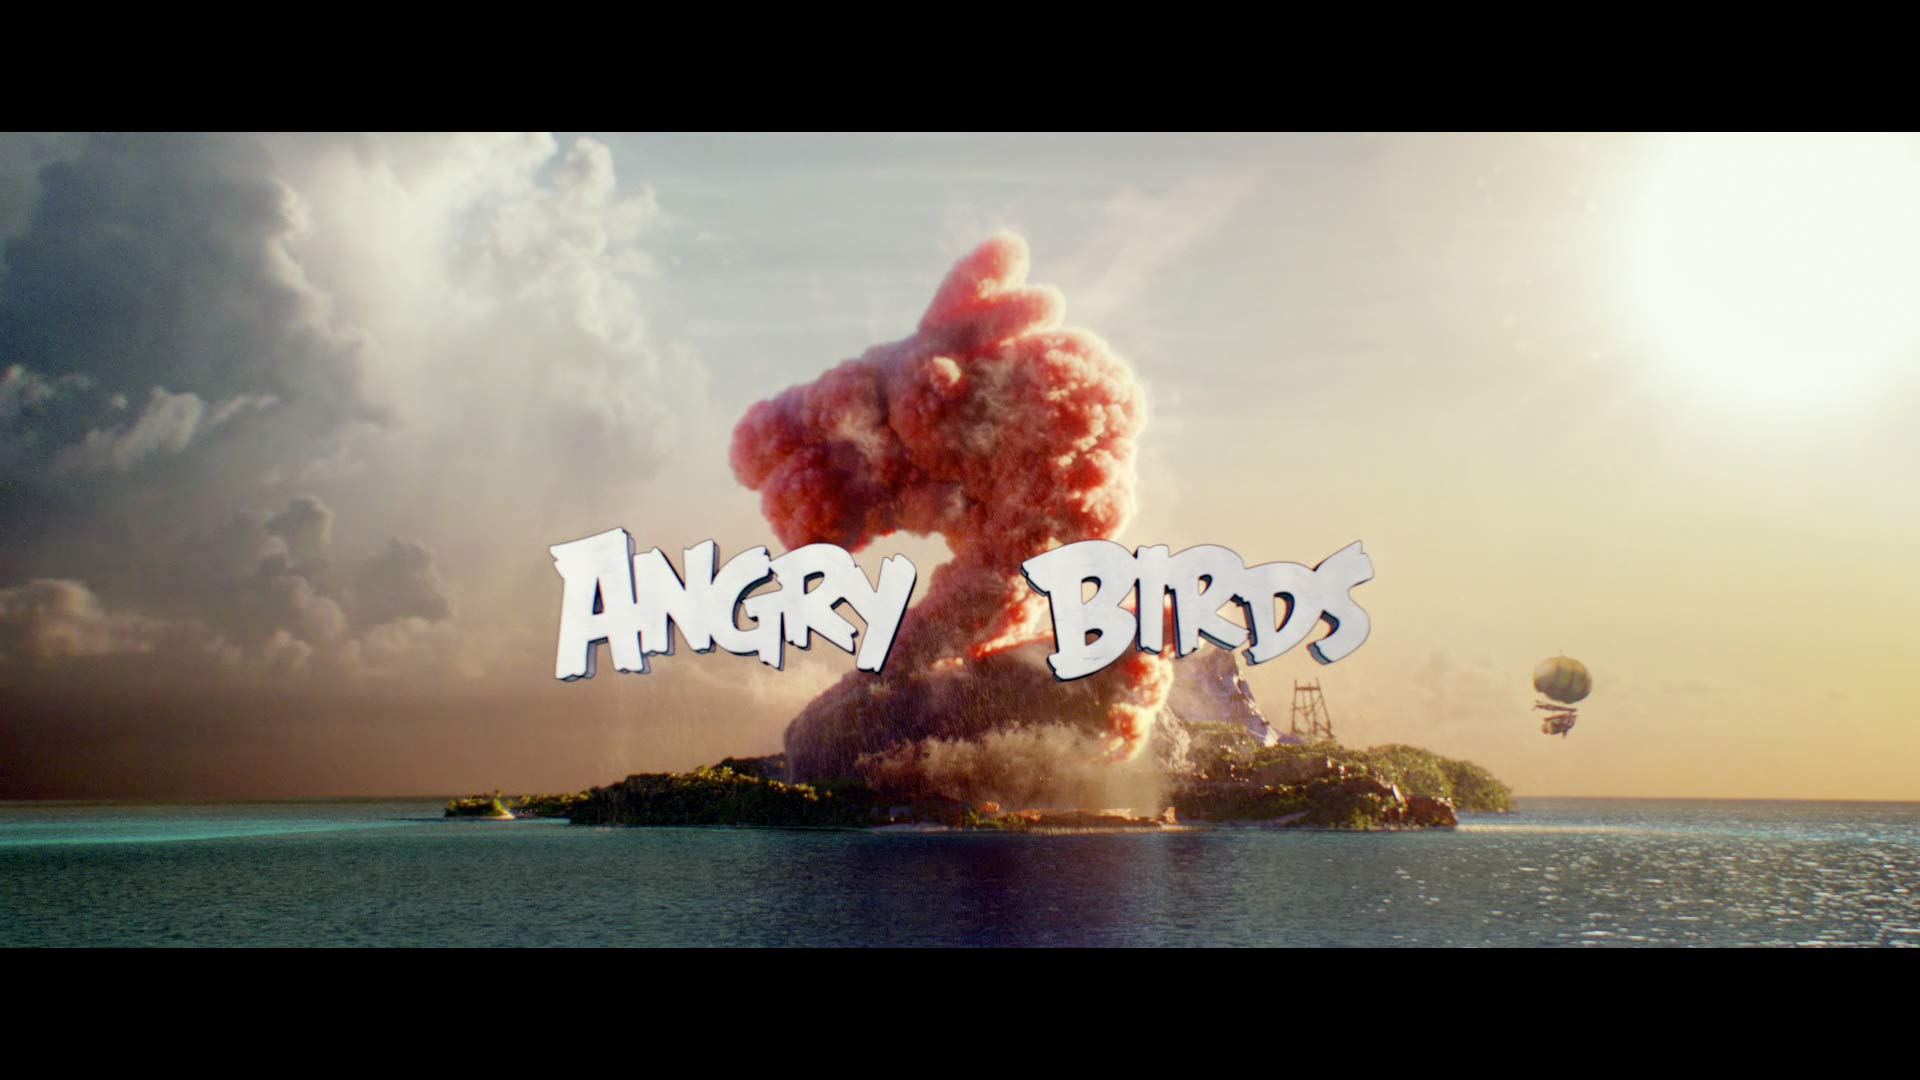 Behind The Scenes of the Angry Birds 2 Launch Film